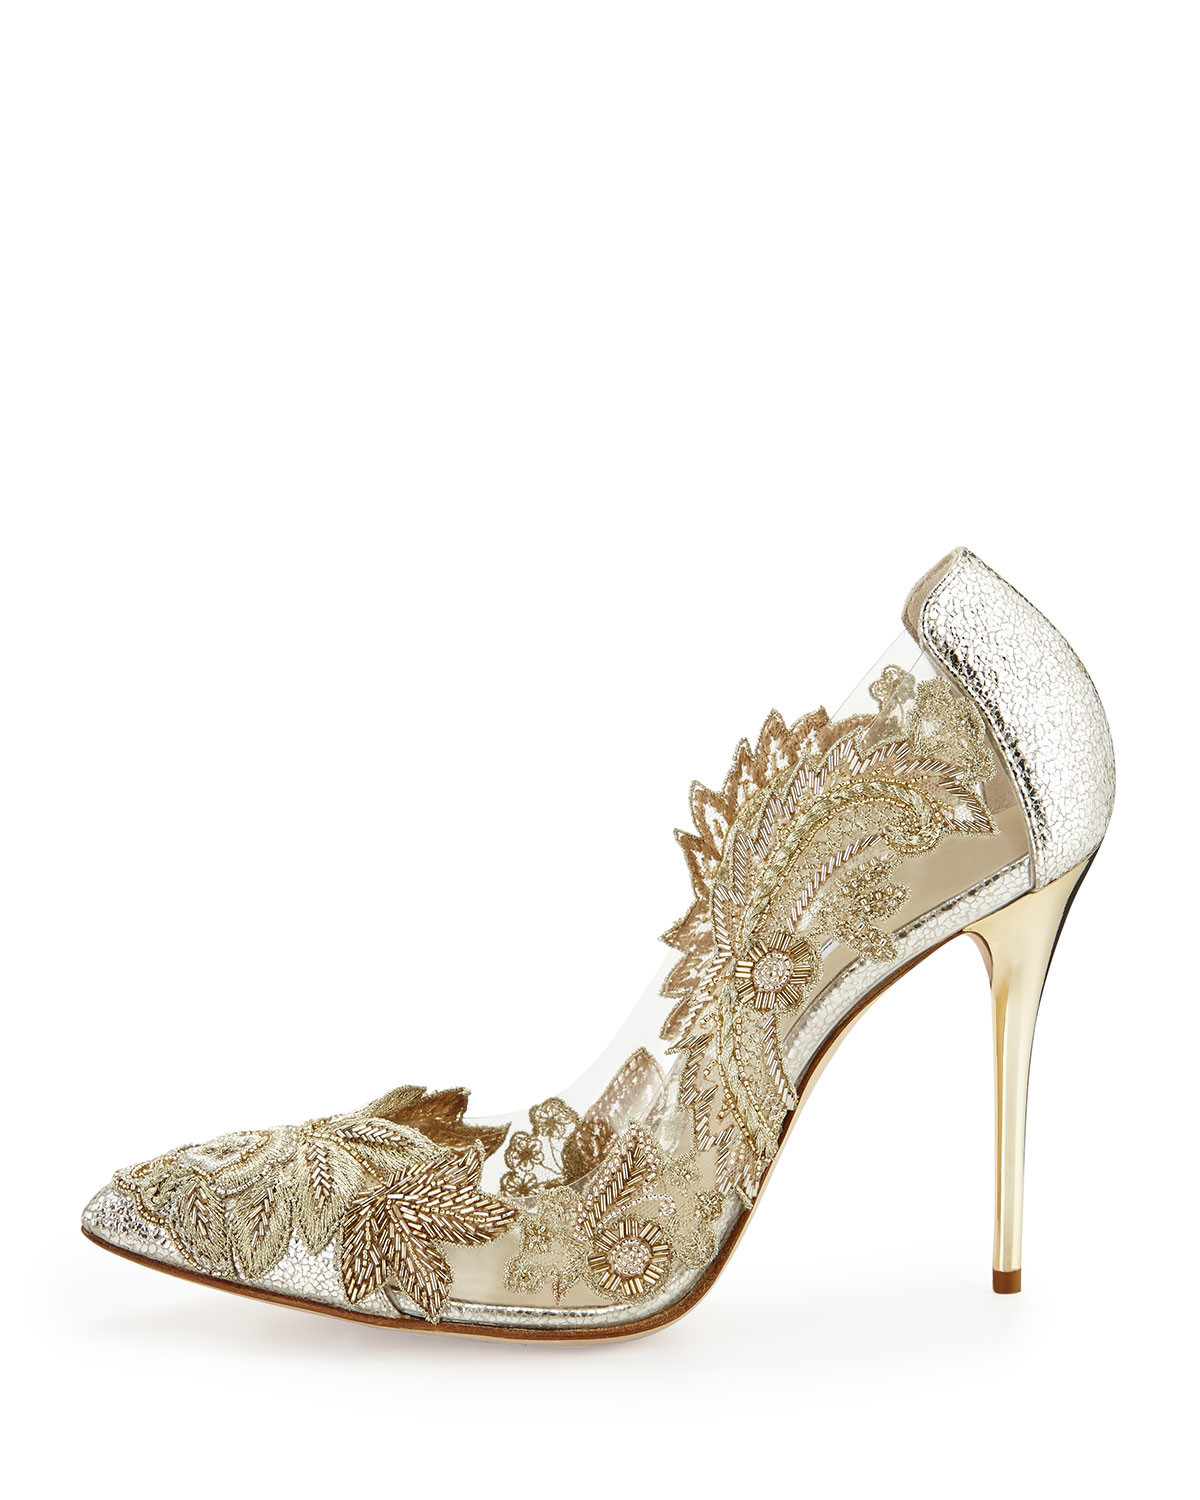 Oscar de la Renta logo embellished pumps for cheap sale online cheap sale 2015 new visit cheap online sale collections KlLcvQaW0h